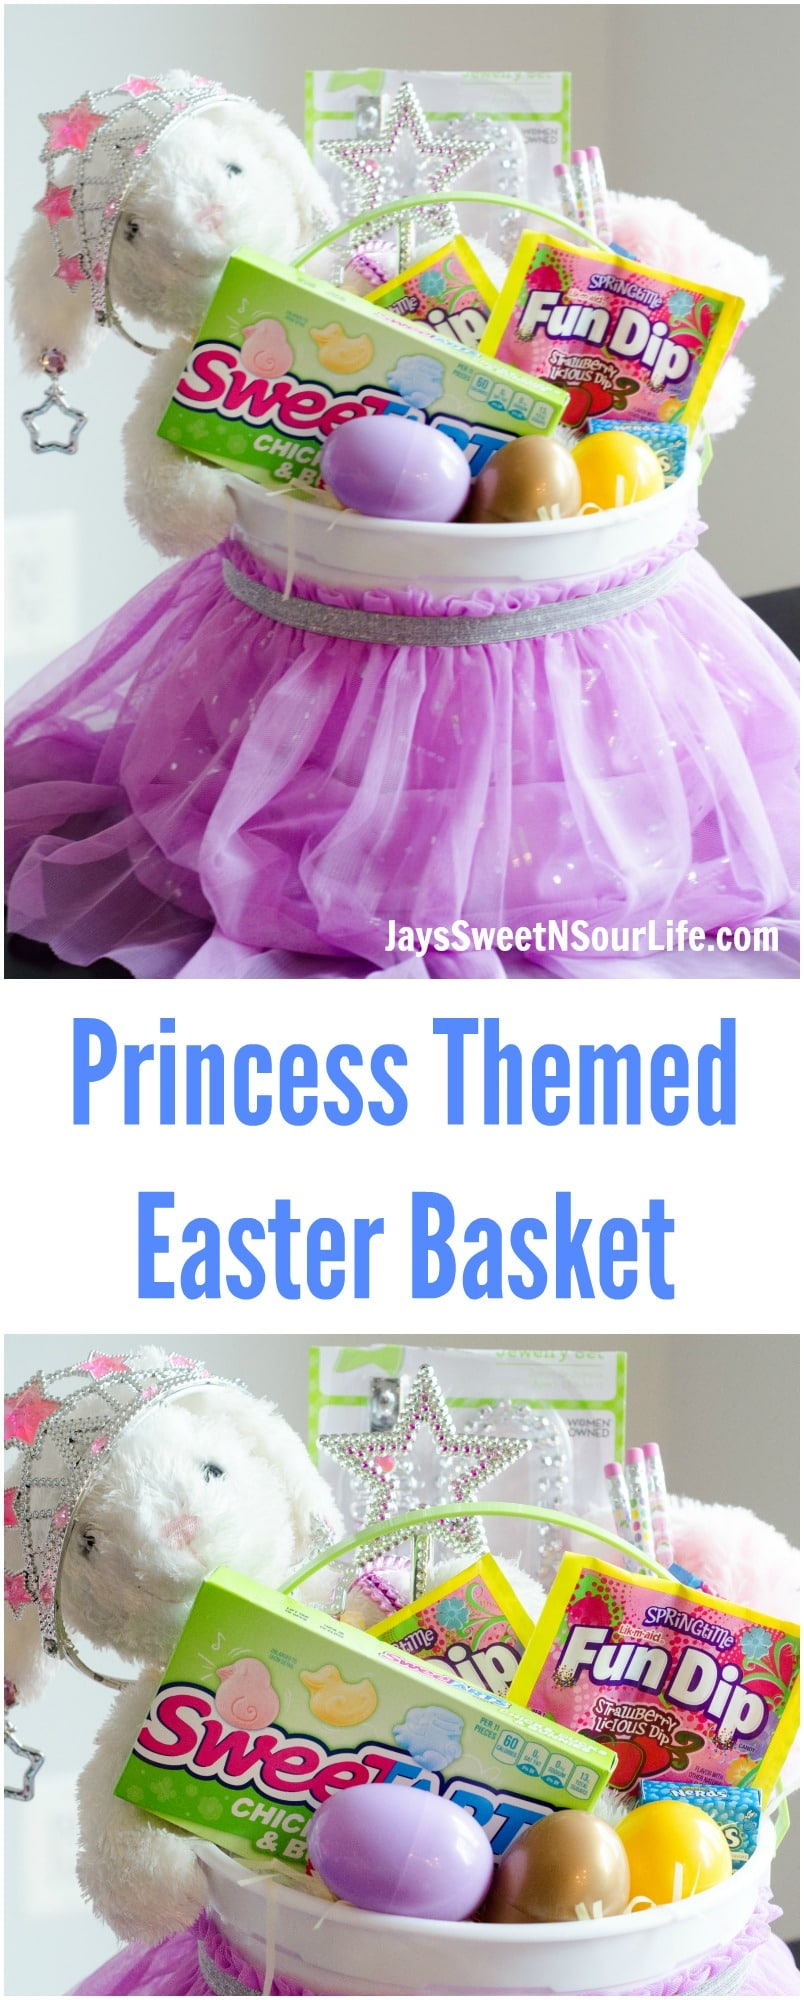 Easter is right around the corner, which means this mom is hard at work getting her 4 Kids Easter baskets together. This year I decided to put a spin on my girls Easter baskets by creating a Princess themed basket.   Fully equipped with everything a princess needs. #ad #Nestle #NestleEasterBasket #Easter #EasterBasket #diy #easterbasketideas #easterdiy #Kidfriendly #momapproved #easydiy #crafty #craft #candy @Nestle